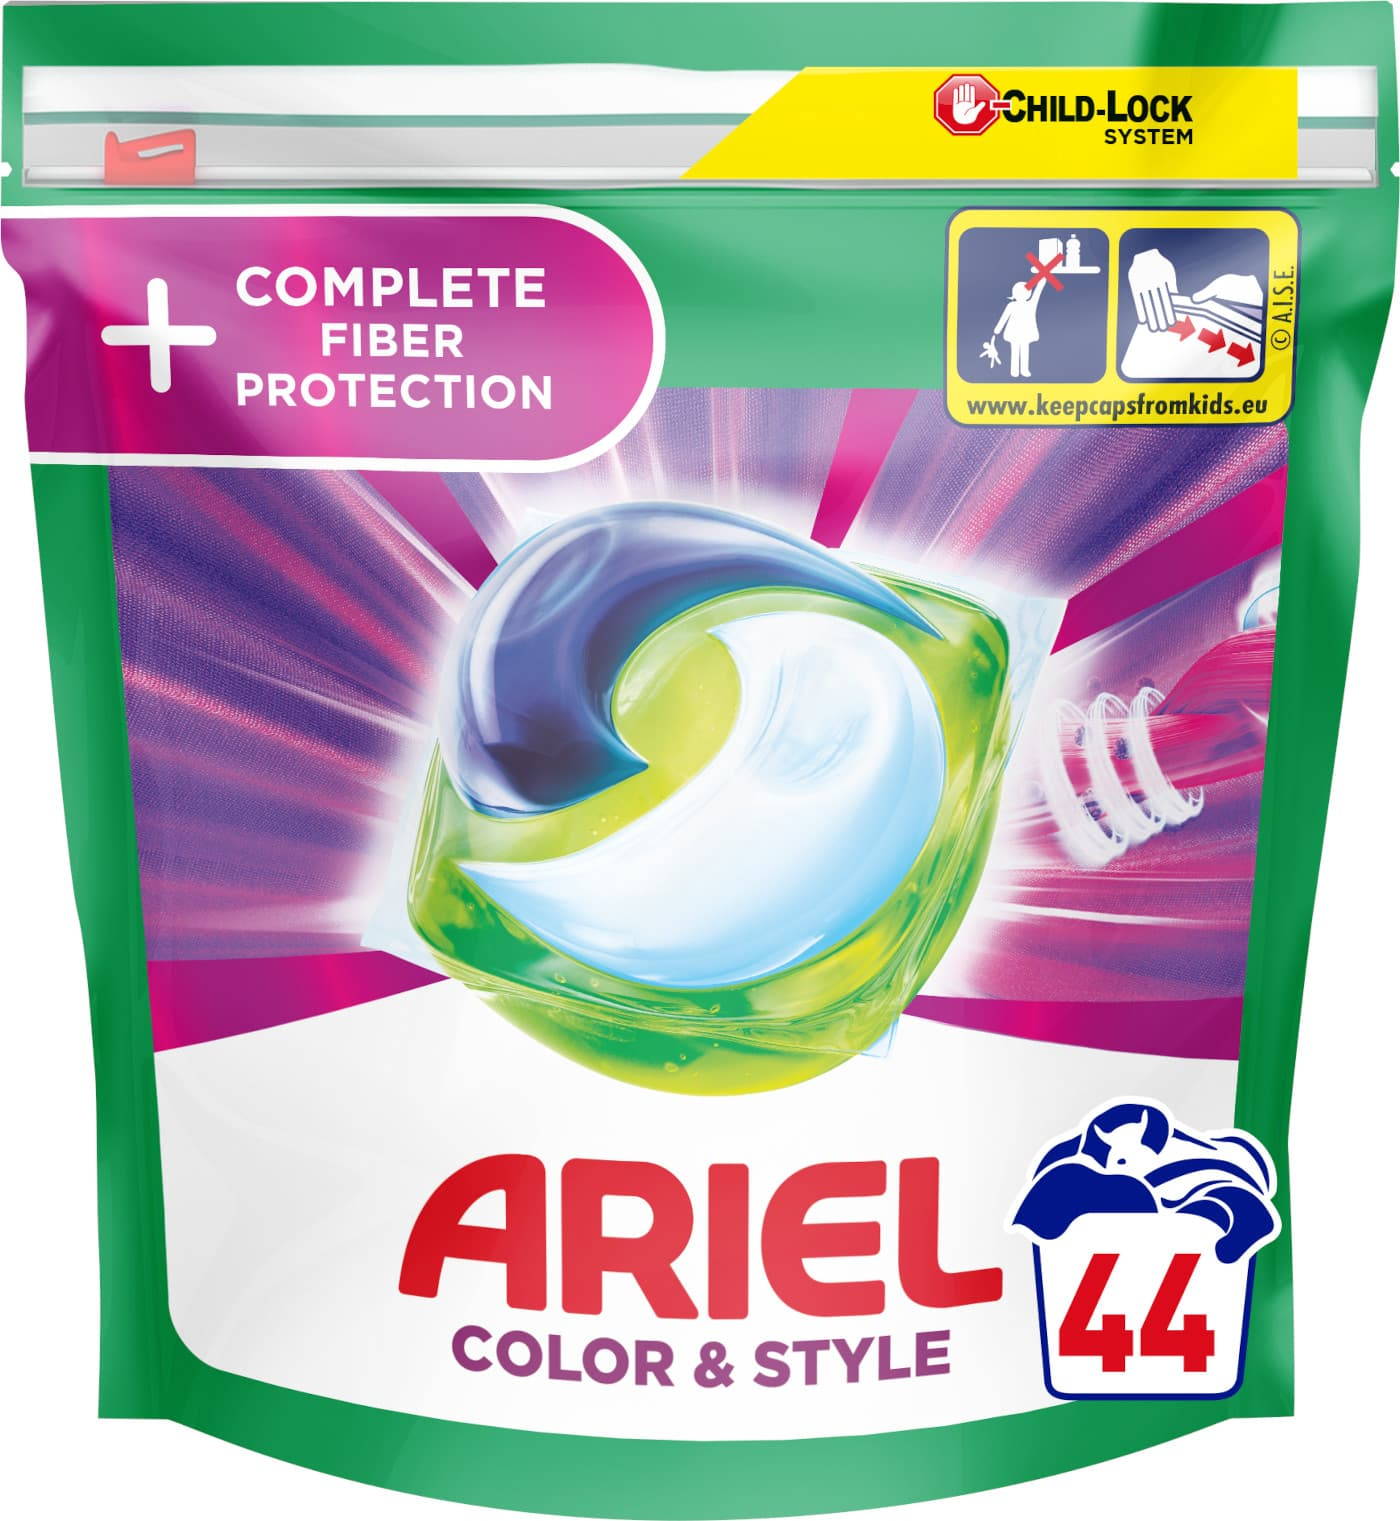 Ariel gelové kapsle All in 1 Color Complete Fiber Protection 44ks